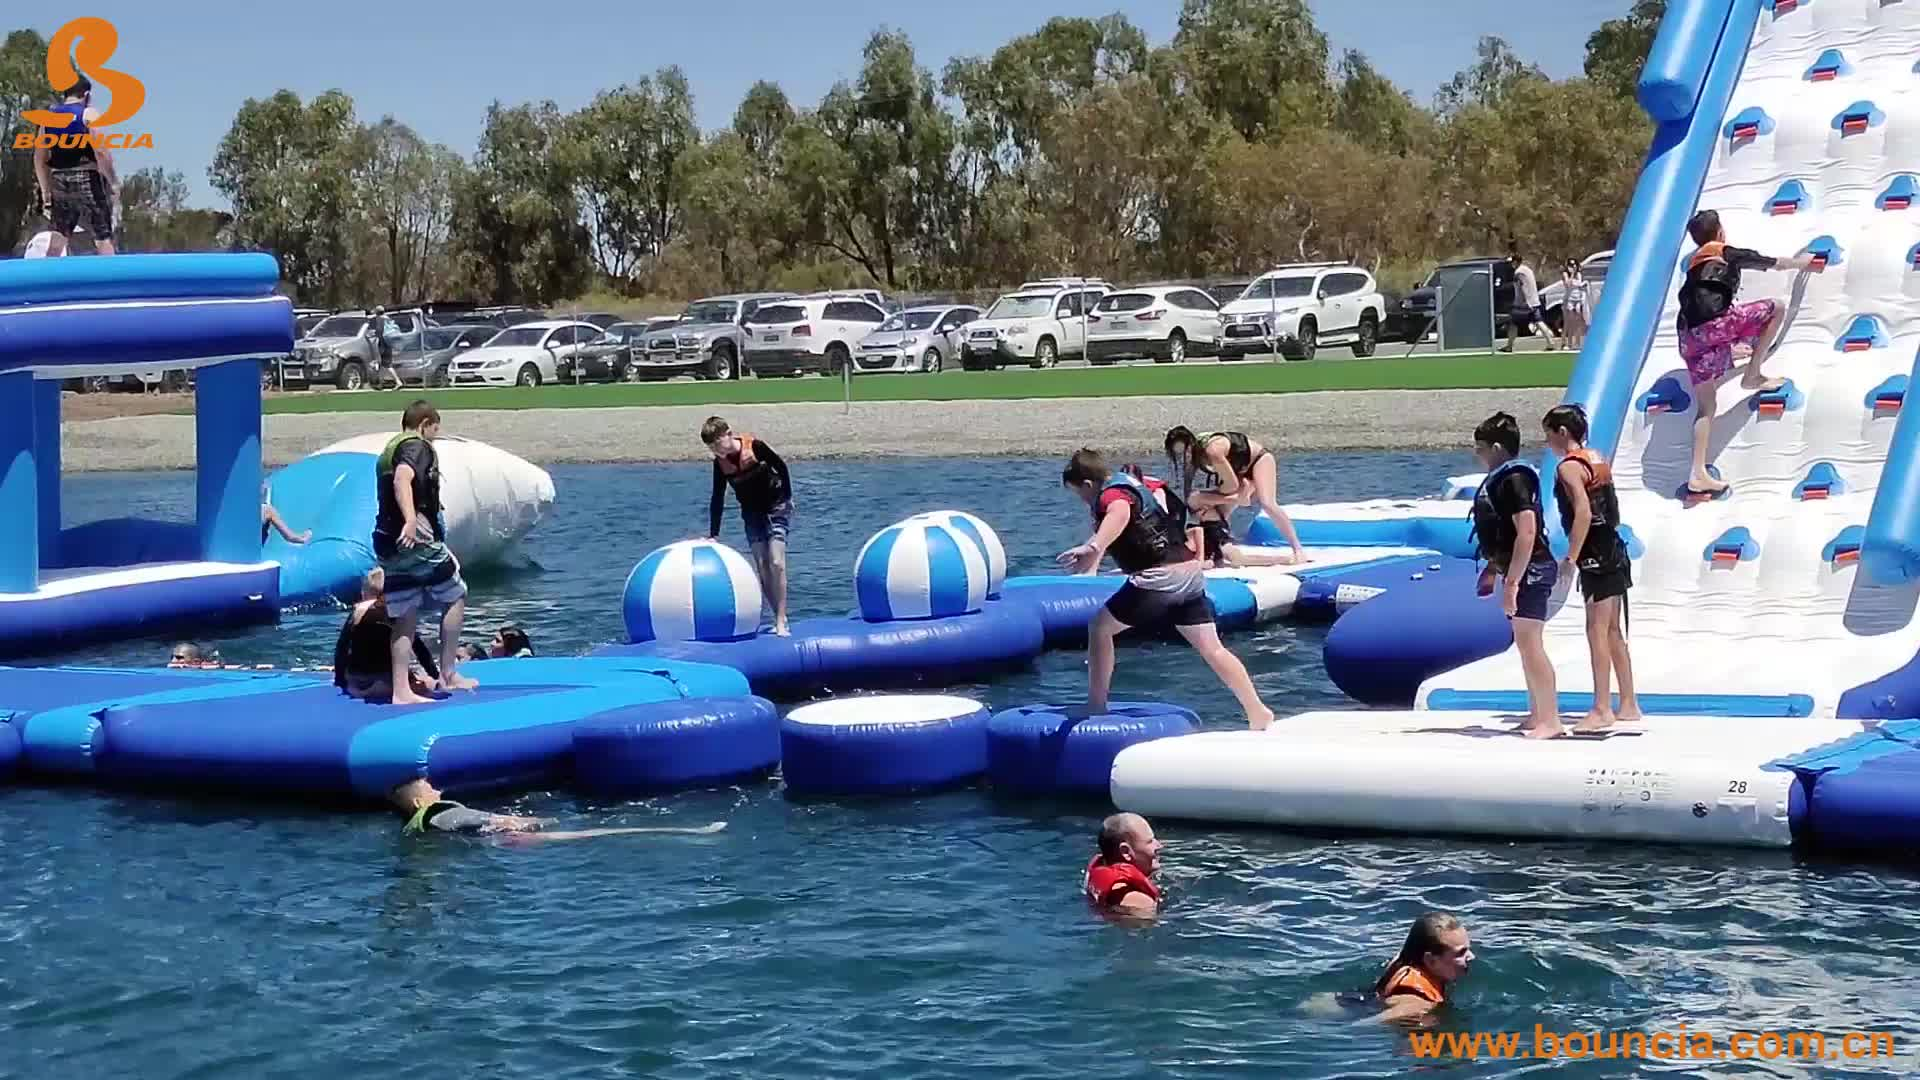 Bouncia New Giant Inflatable Floating Water Slide With TUV Certification